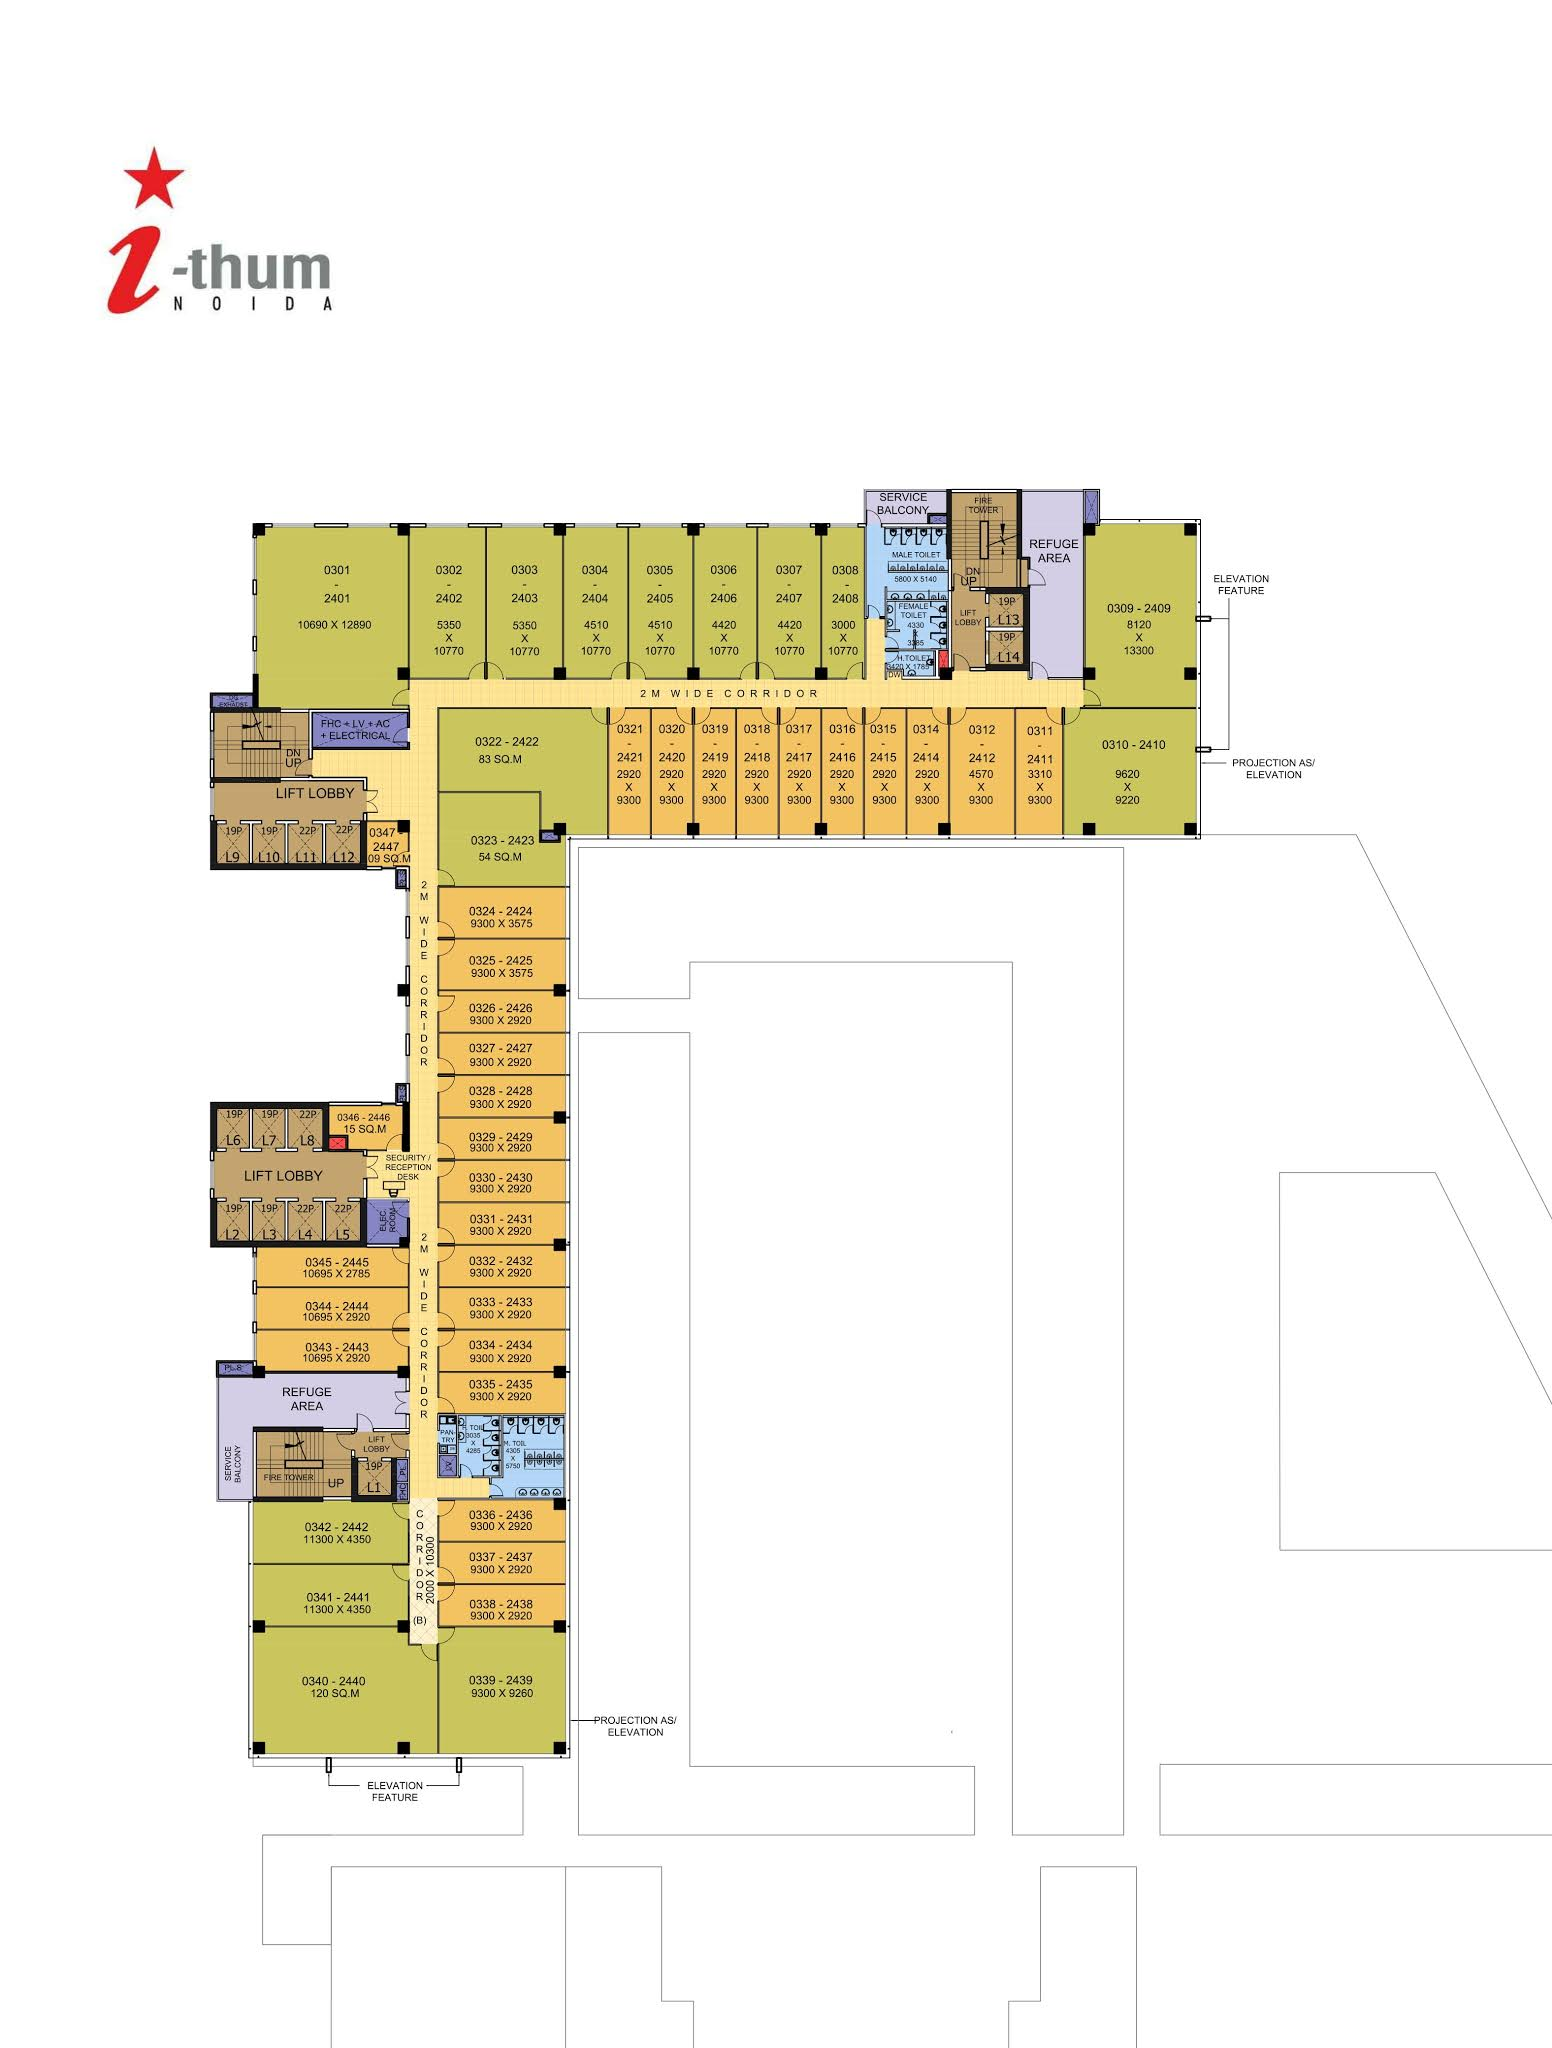 ithum-73-office-space-floor-plan